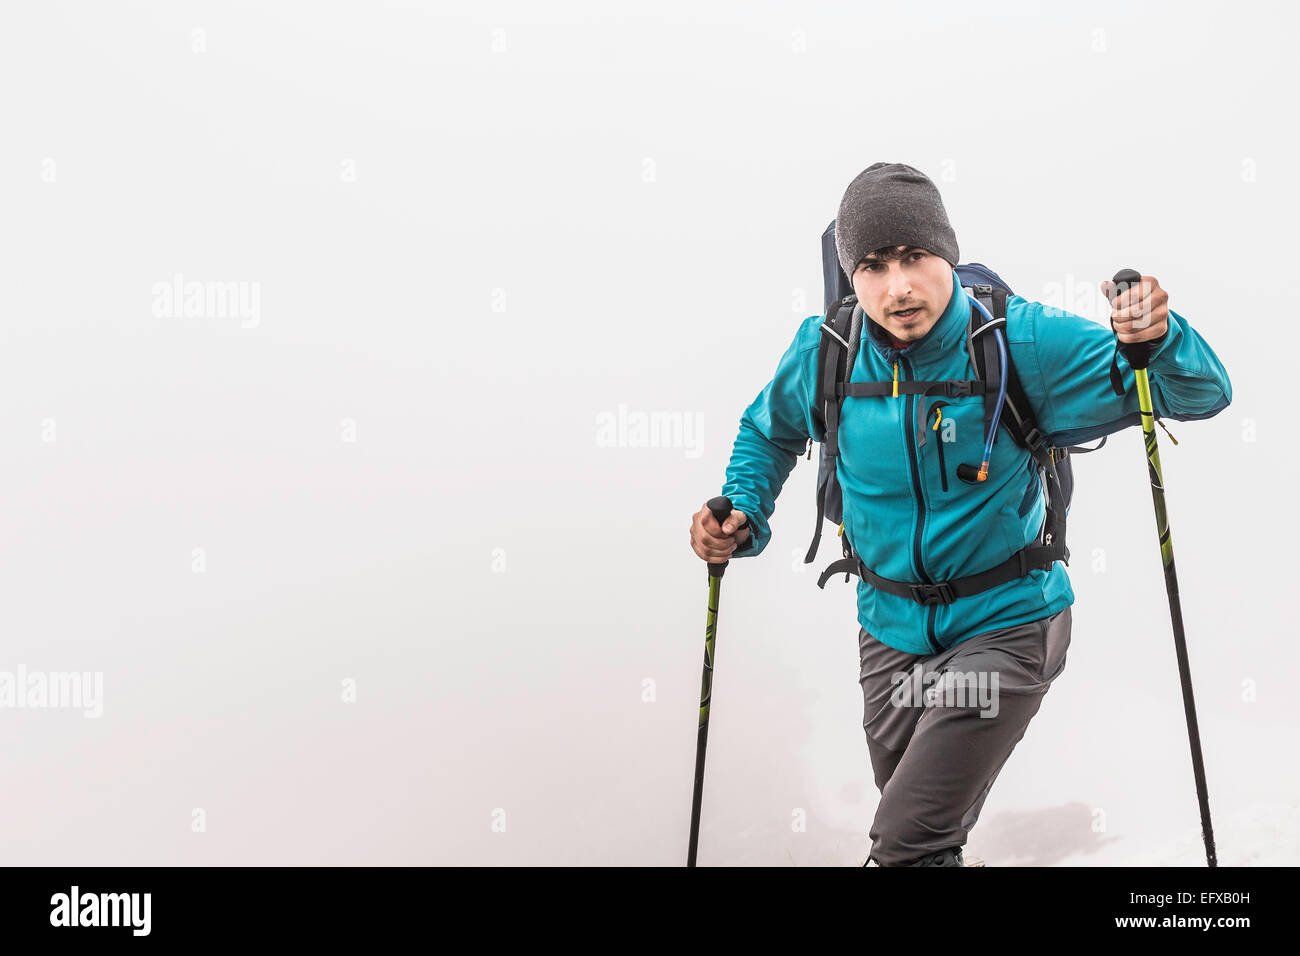 Young man mountain trekking in mist, Bavarian Alps, Oberstdorf, Bavaria, Germany - Stock Image